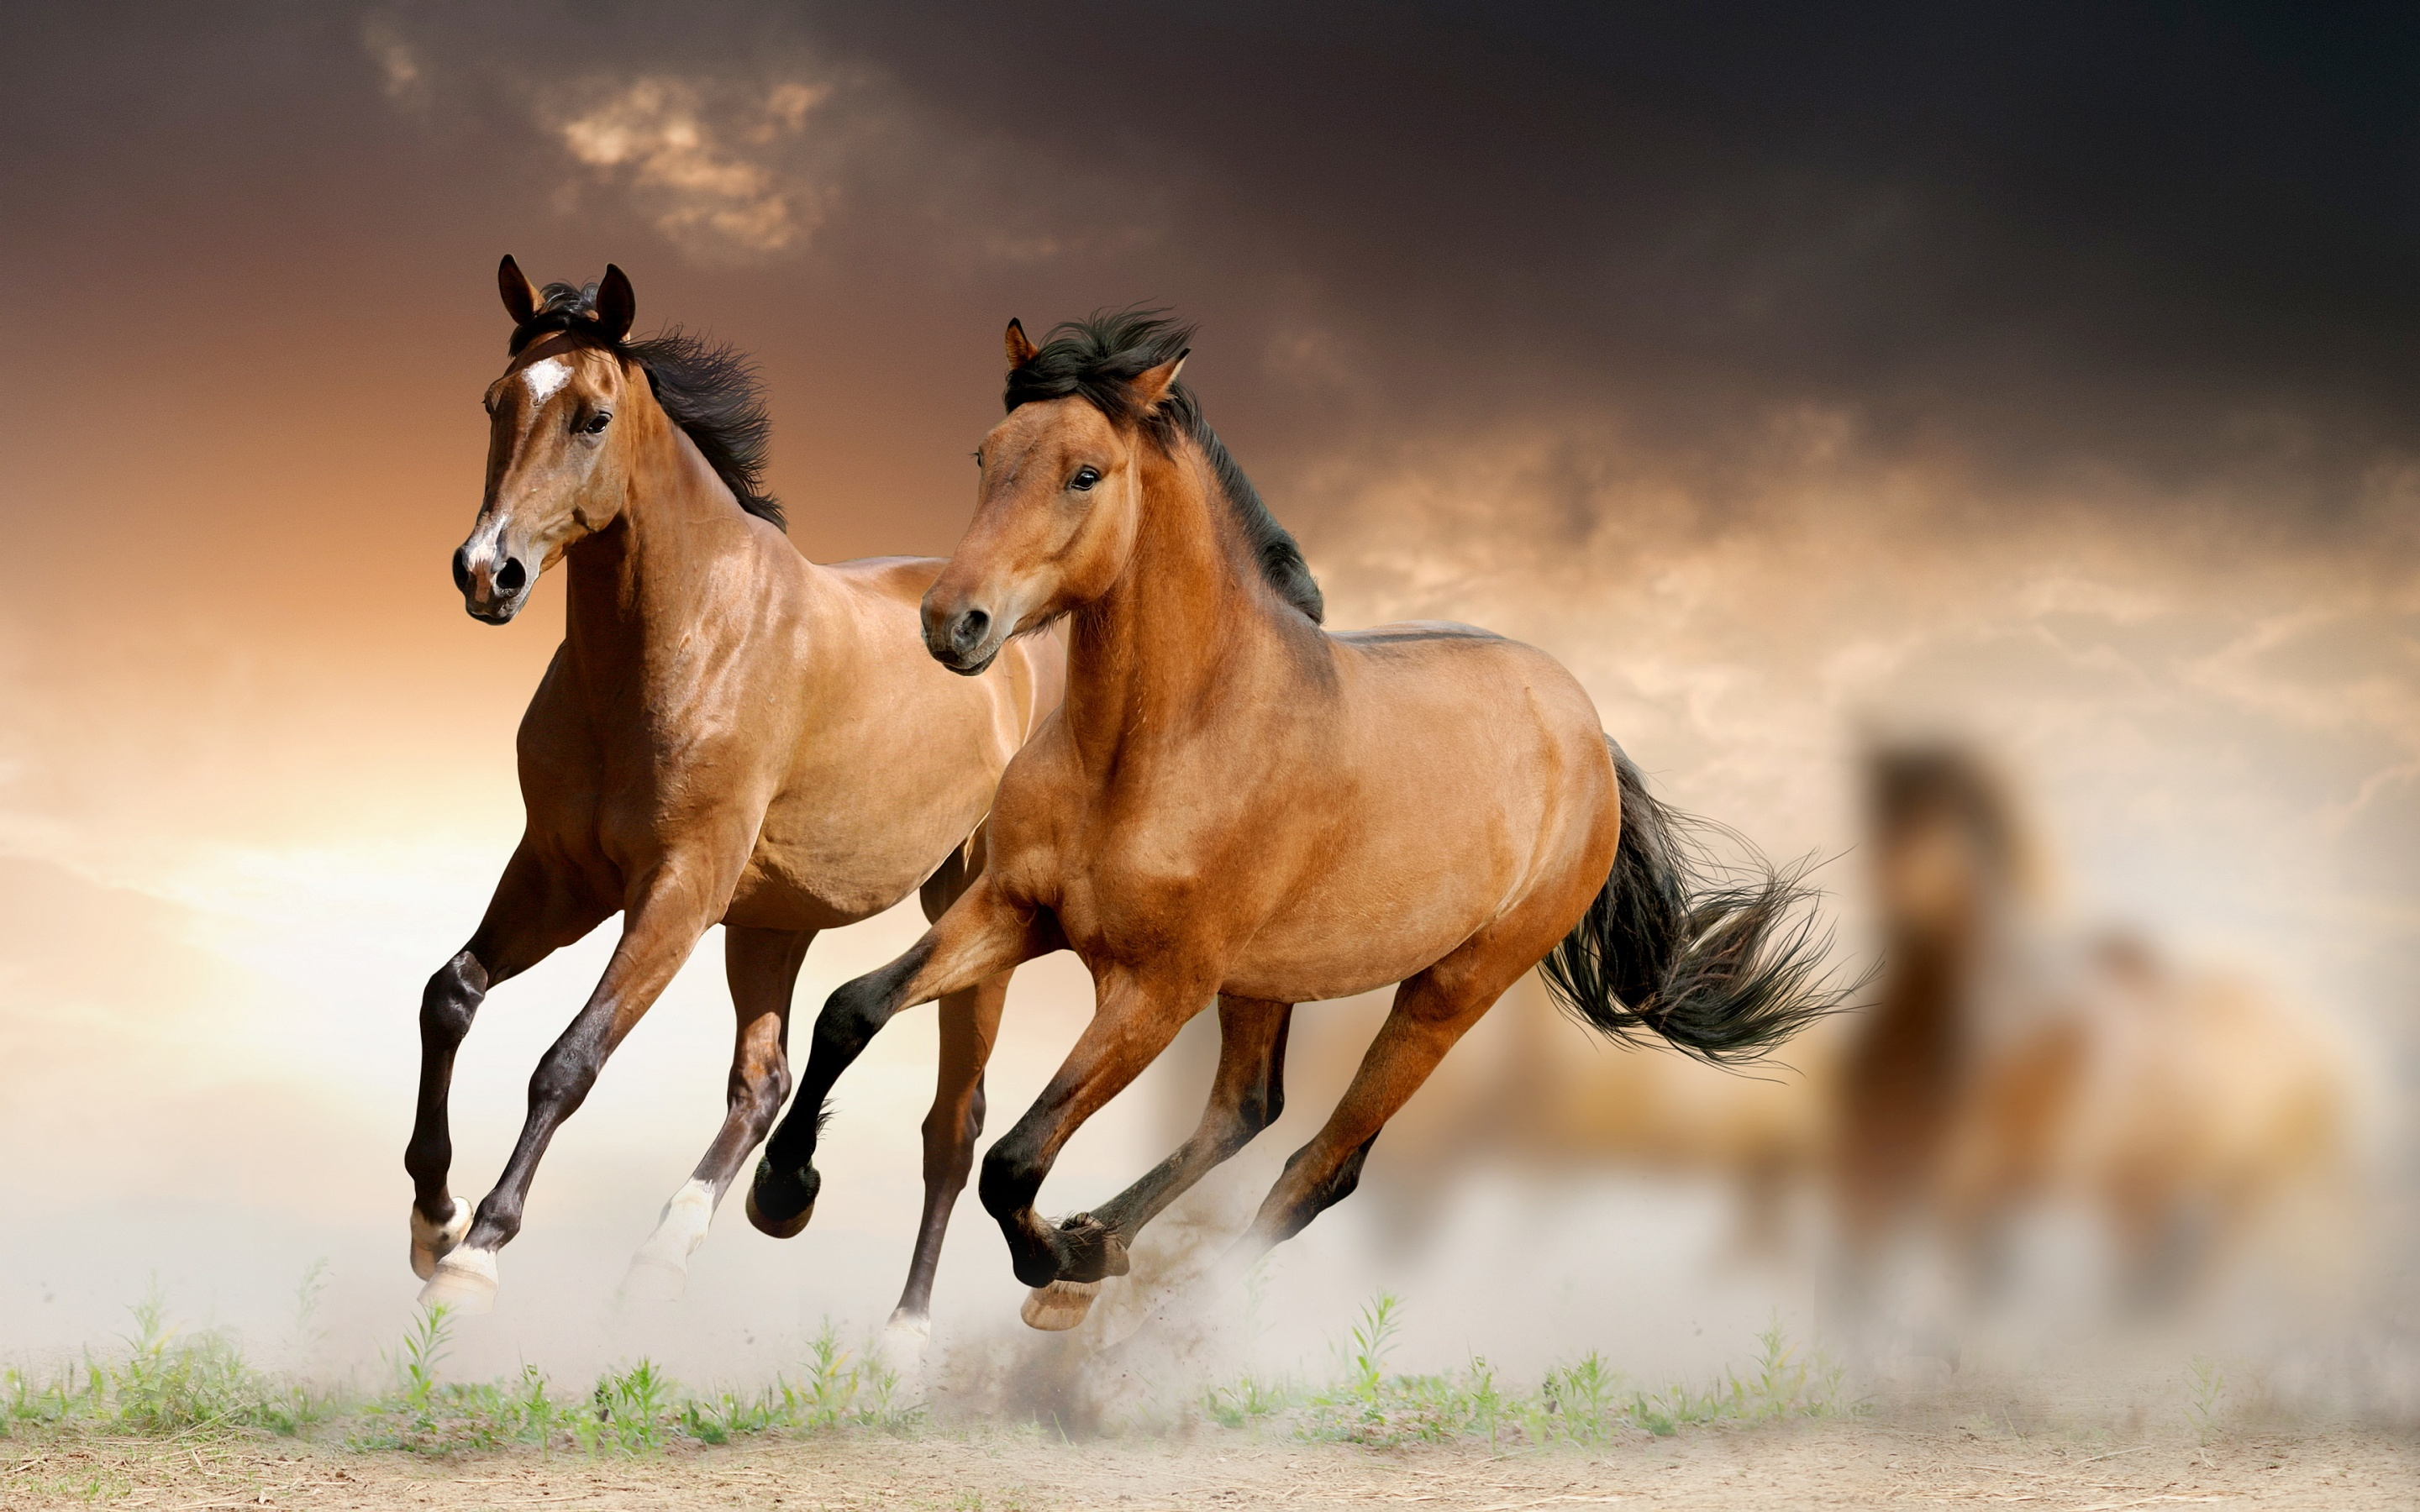 Horse wallpaper windows downloads 10294 wallpaper for Window horses